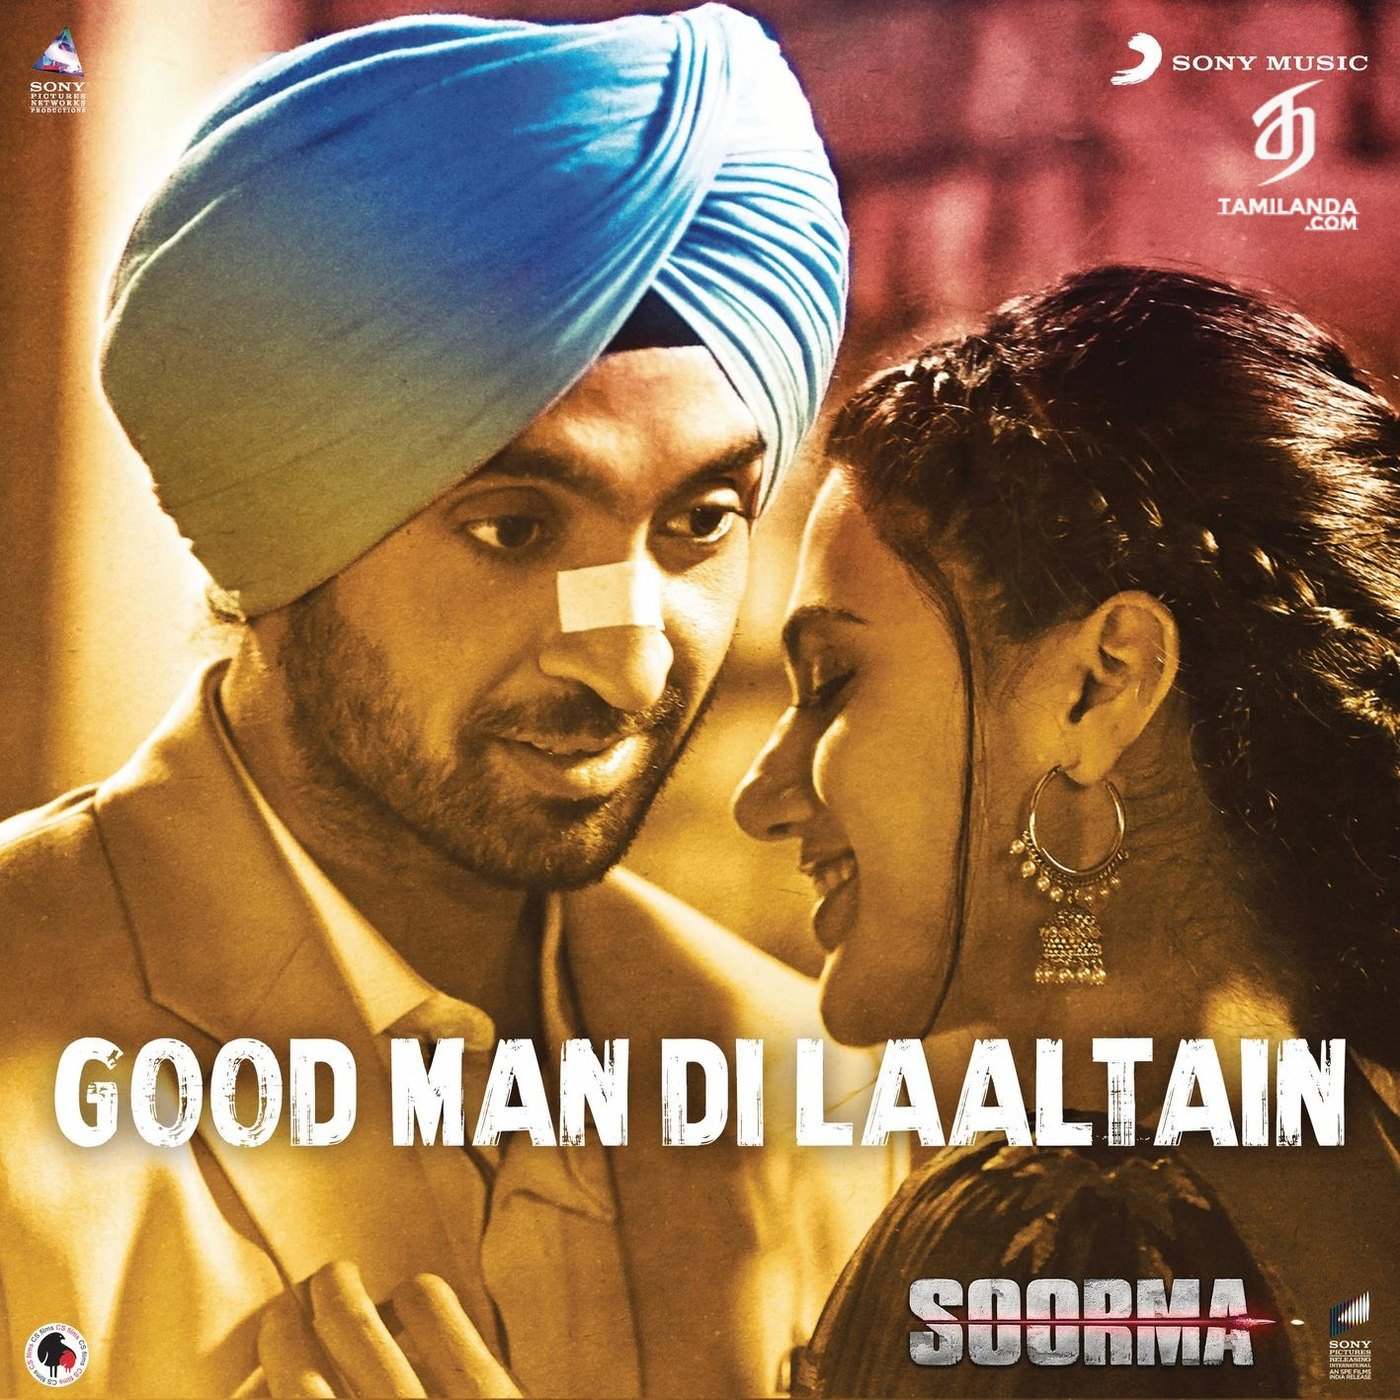 Good Man Di Laaltain 24 BIT FLAC/WAV Songs